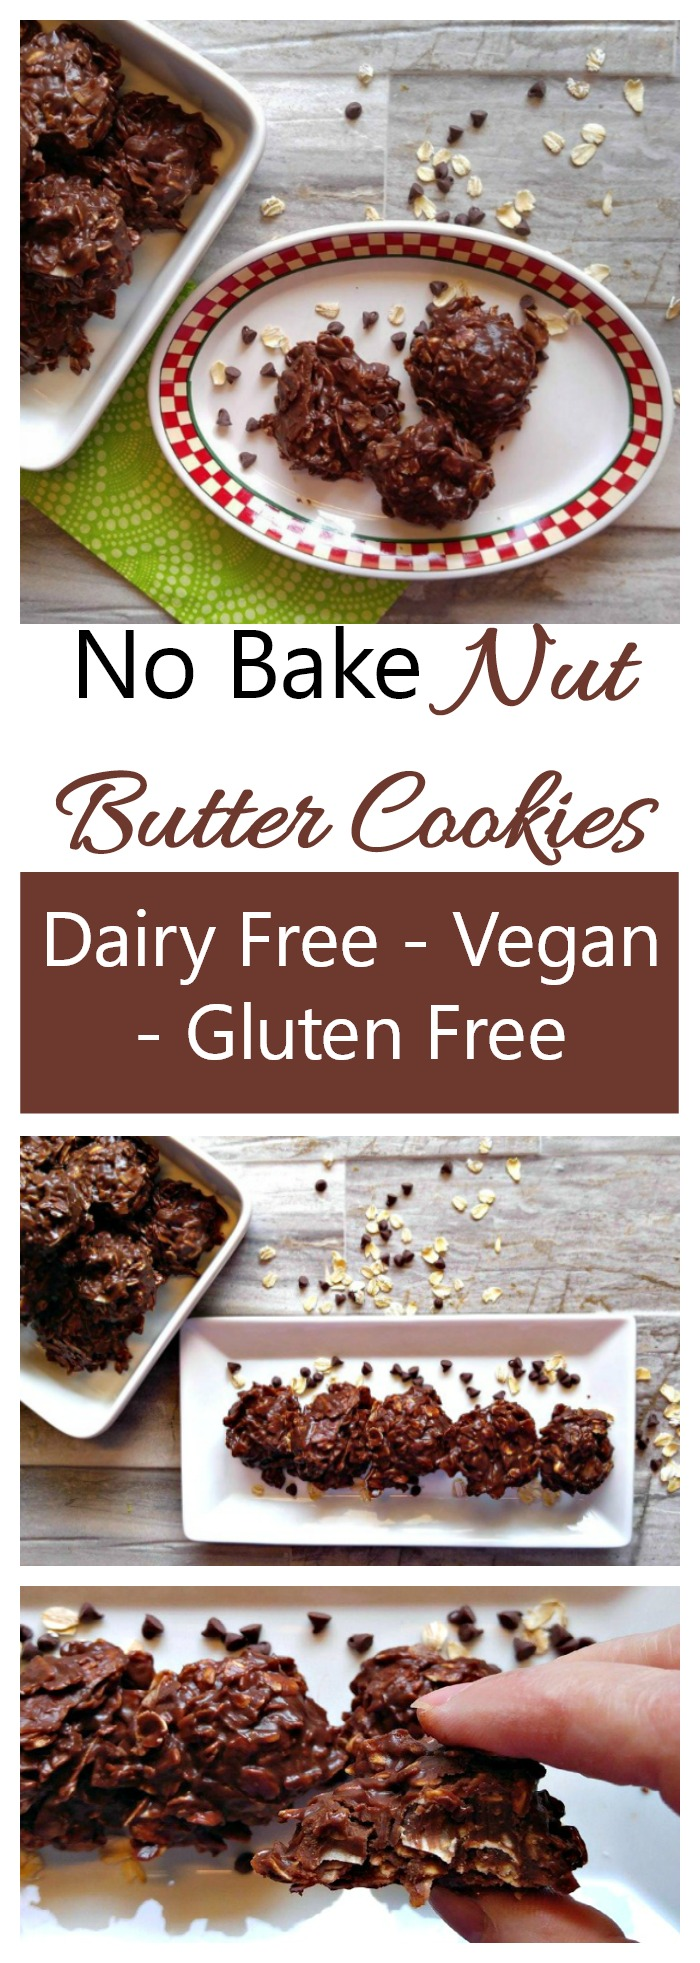 These no bake nut butter cookies have the most decadent flavor and are nut free, dairy free, gluten free and vegan. Super tasty and easy to make, too!